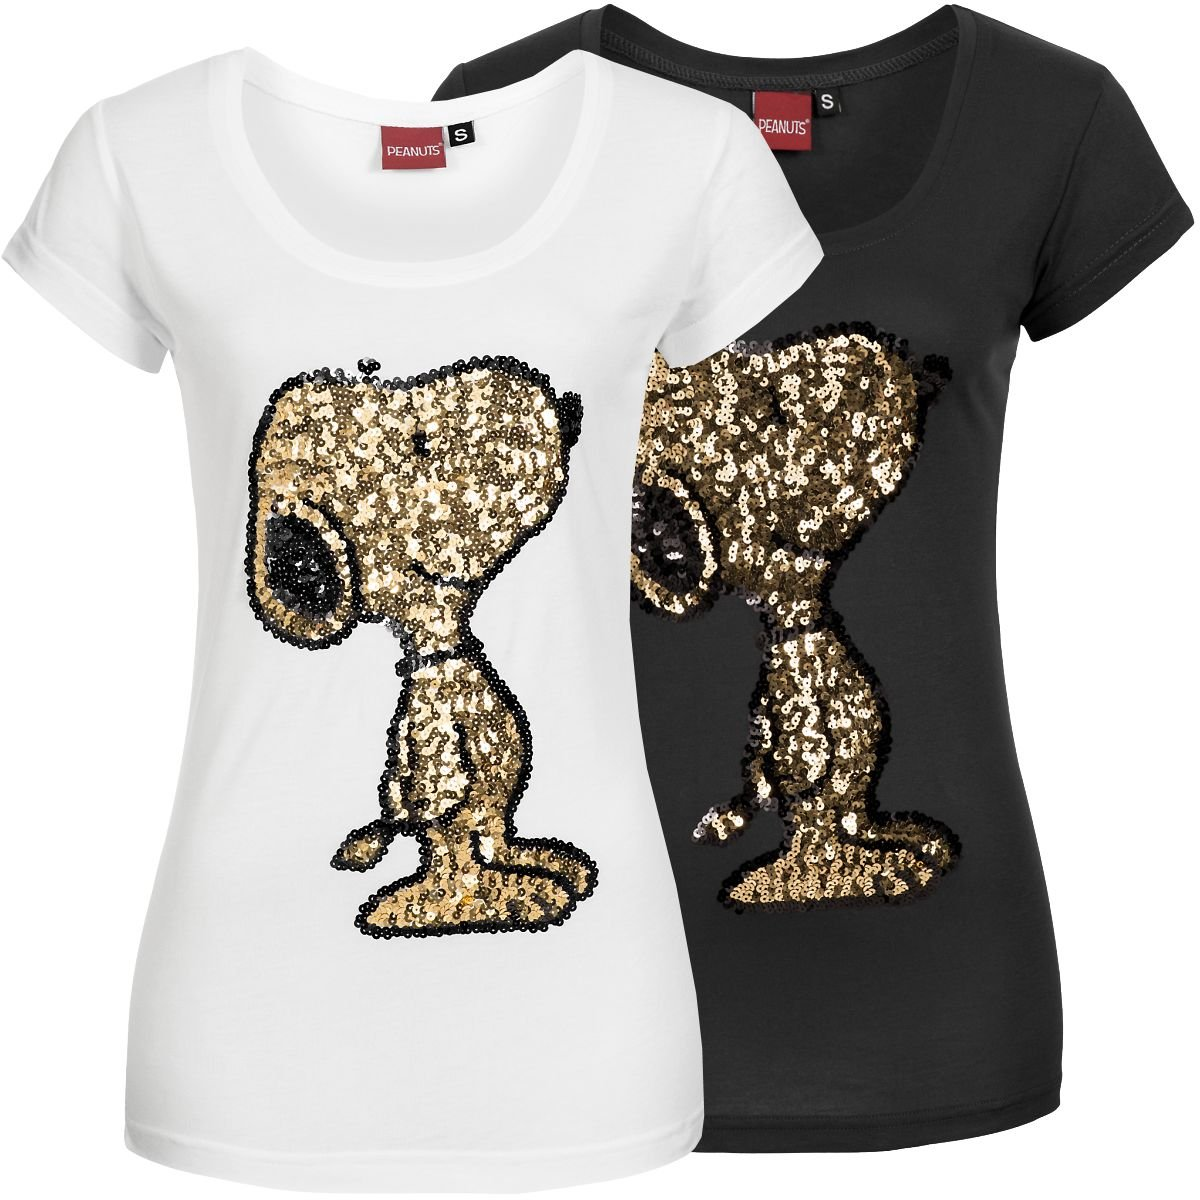 sublevel damen t shirt snoopy lsl 238 damenshirt kurzarm. Black Bedroom Furniture Sets. Home Design Ideas